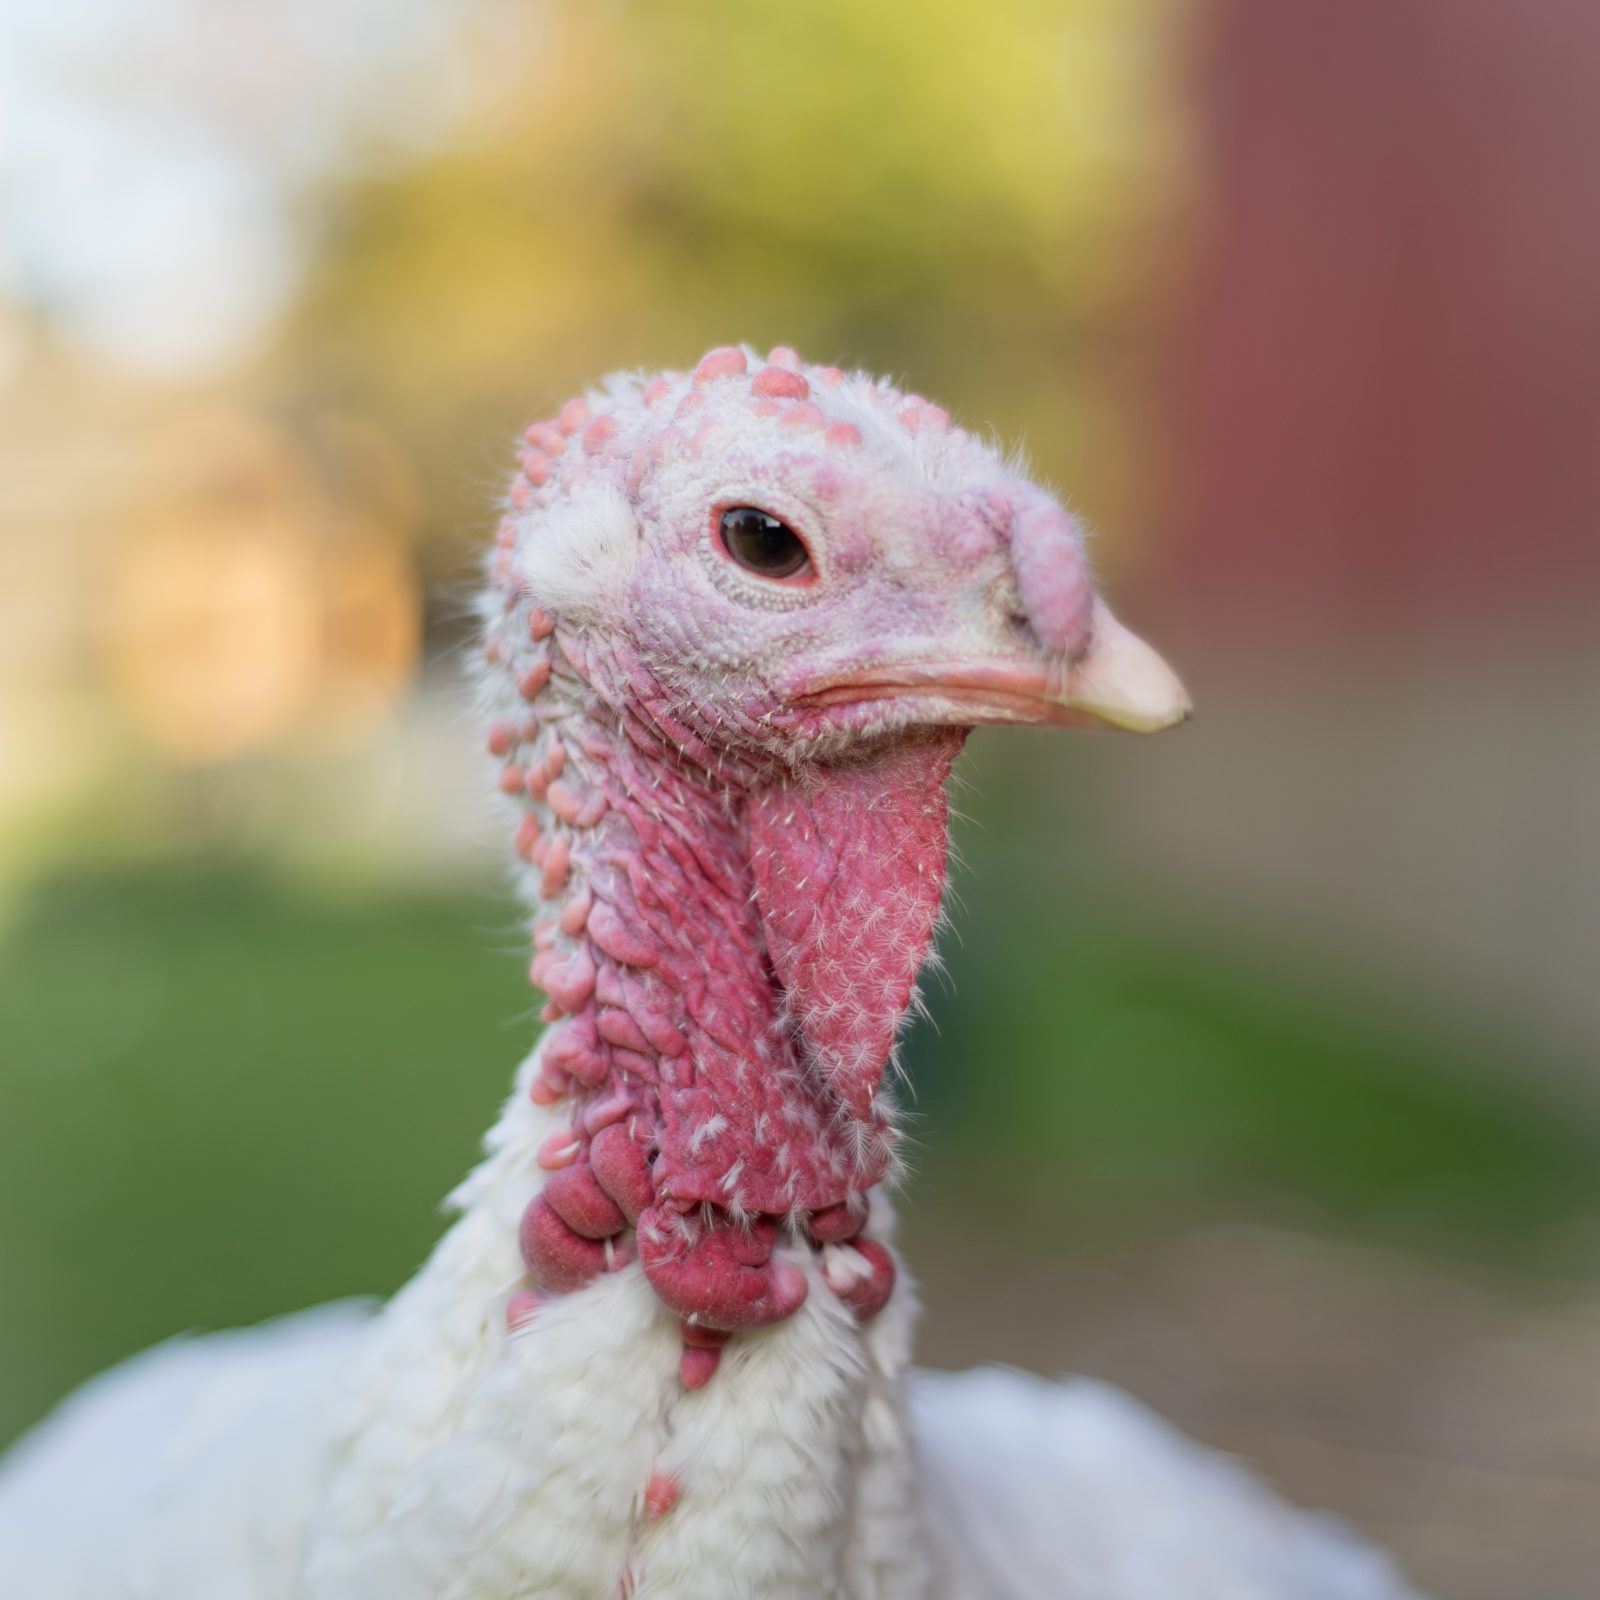 Cecelia Turkey at Farm Sanctuary's New York shelter